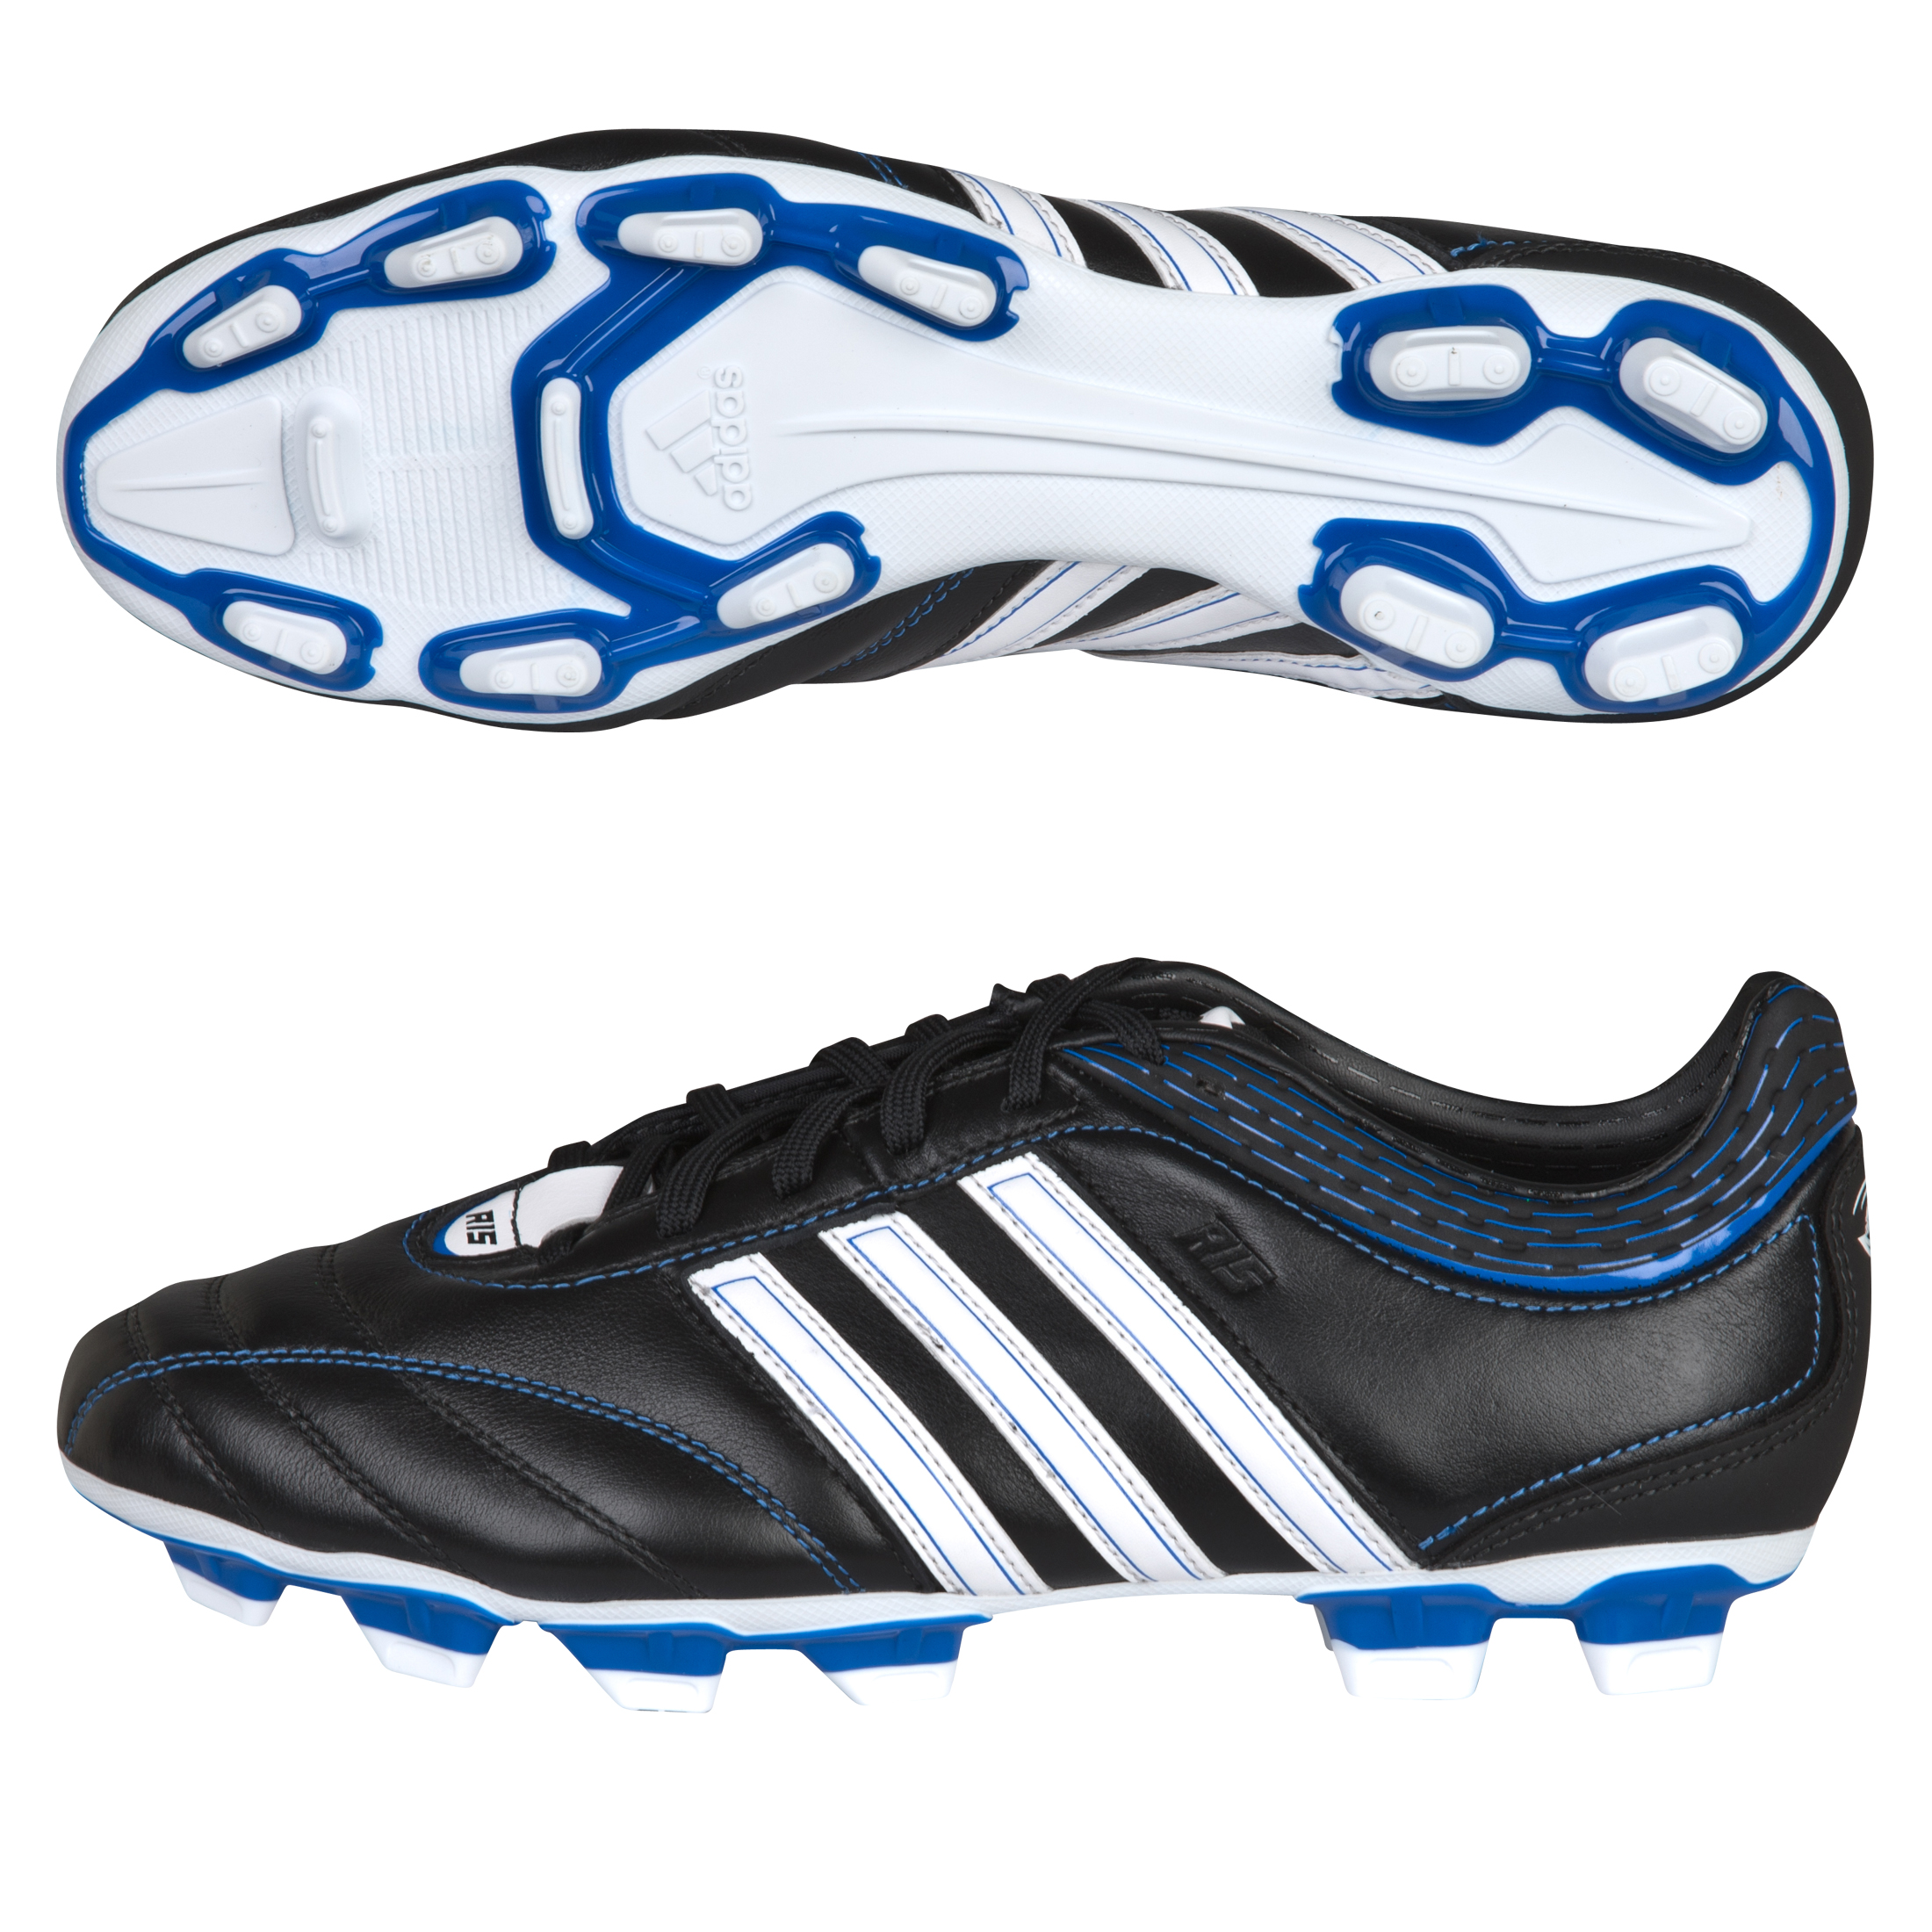 Adidas R15 TRX Firm Ground II Rugby Boots